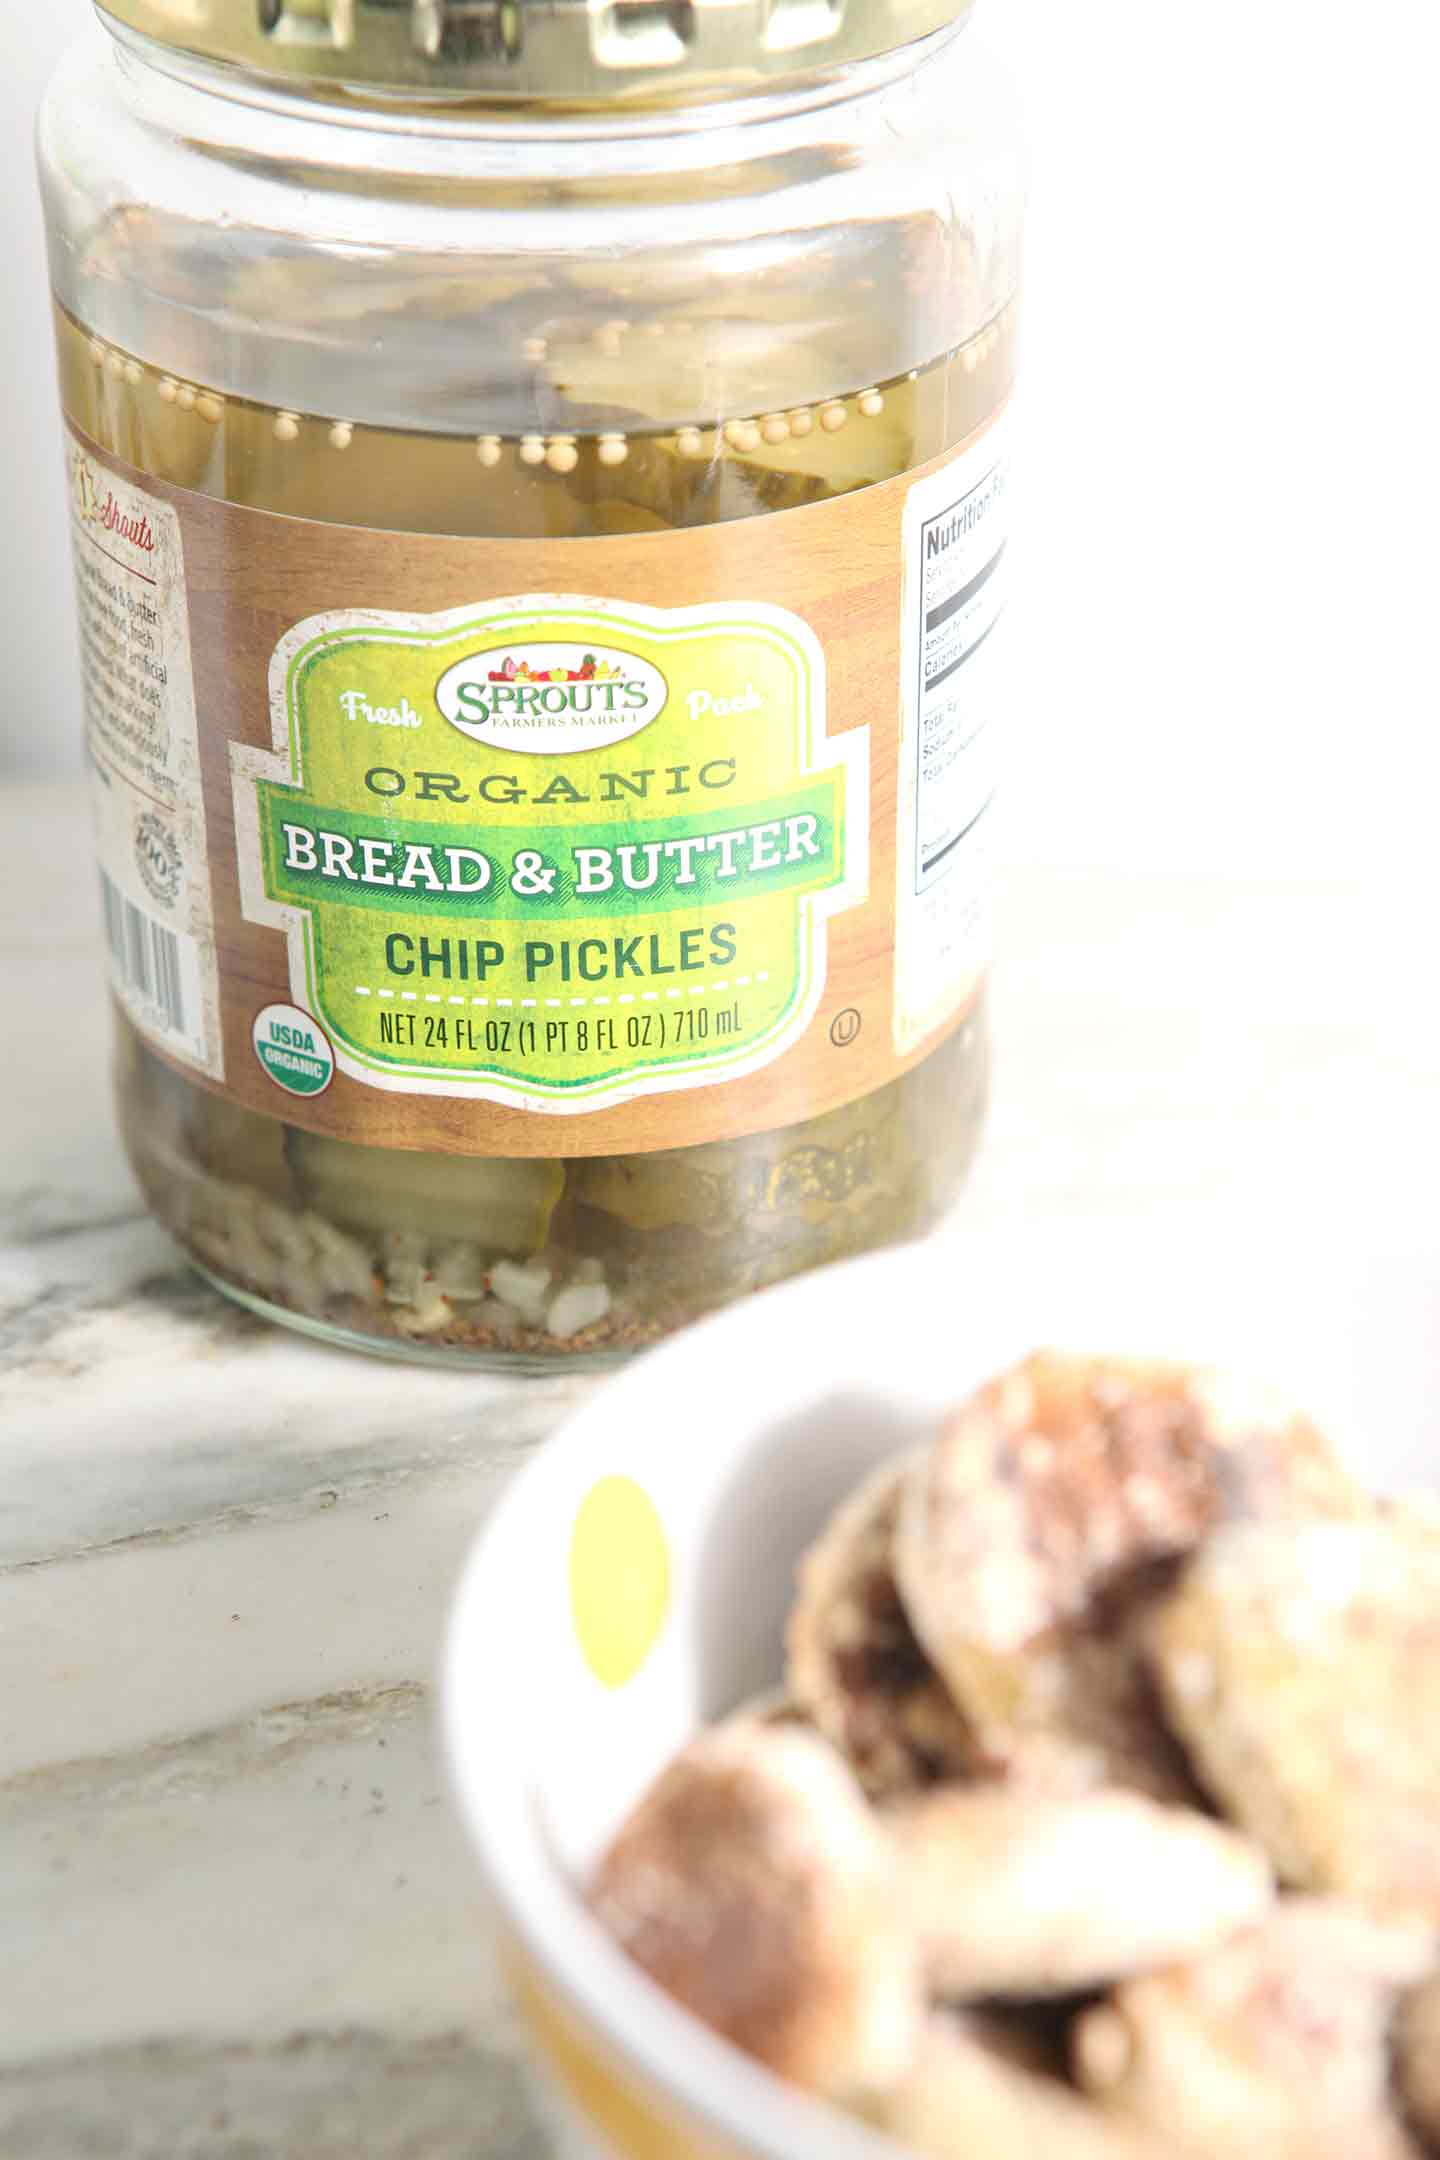 Close up of Sprouts Organic Bread & Butter Chip Pickles